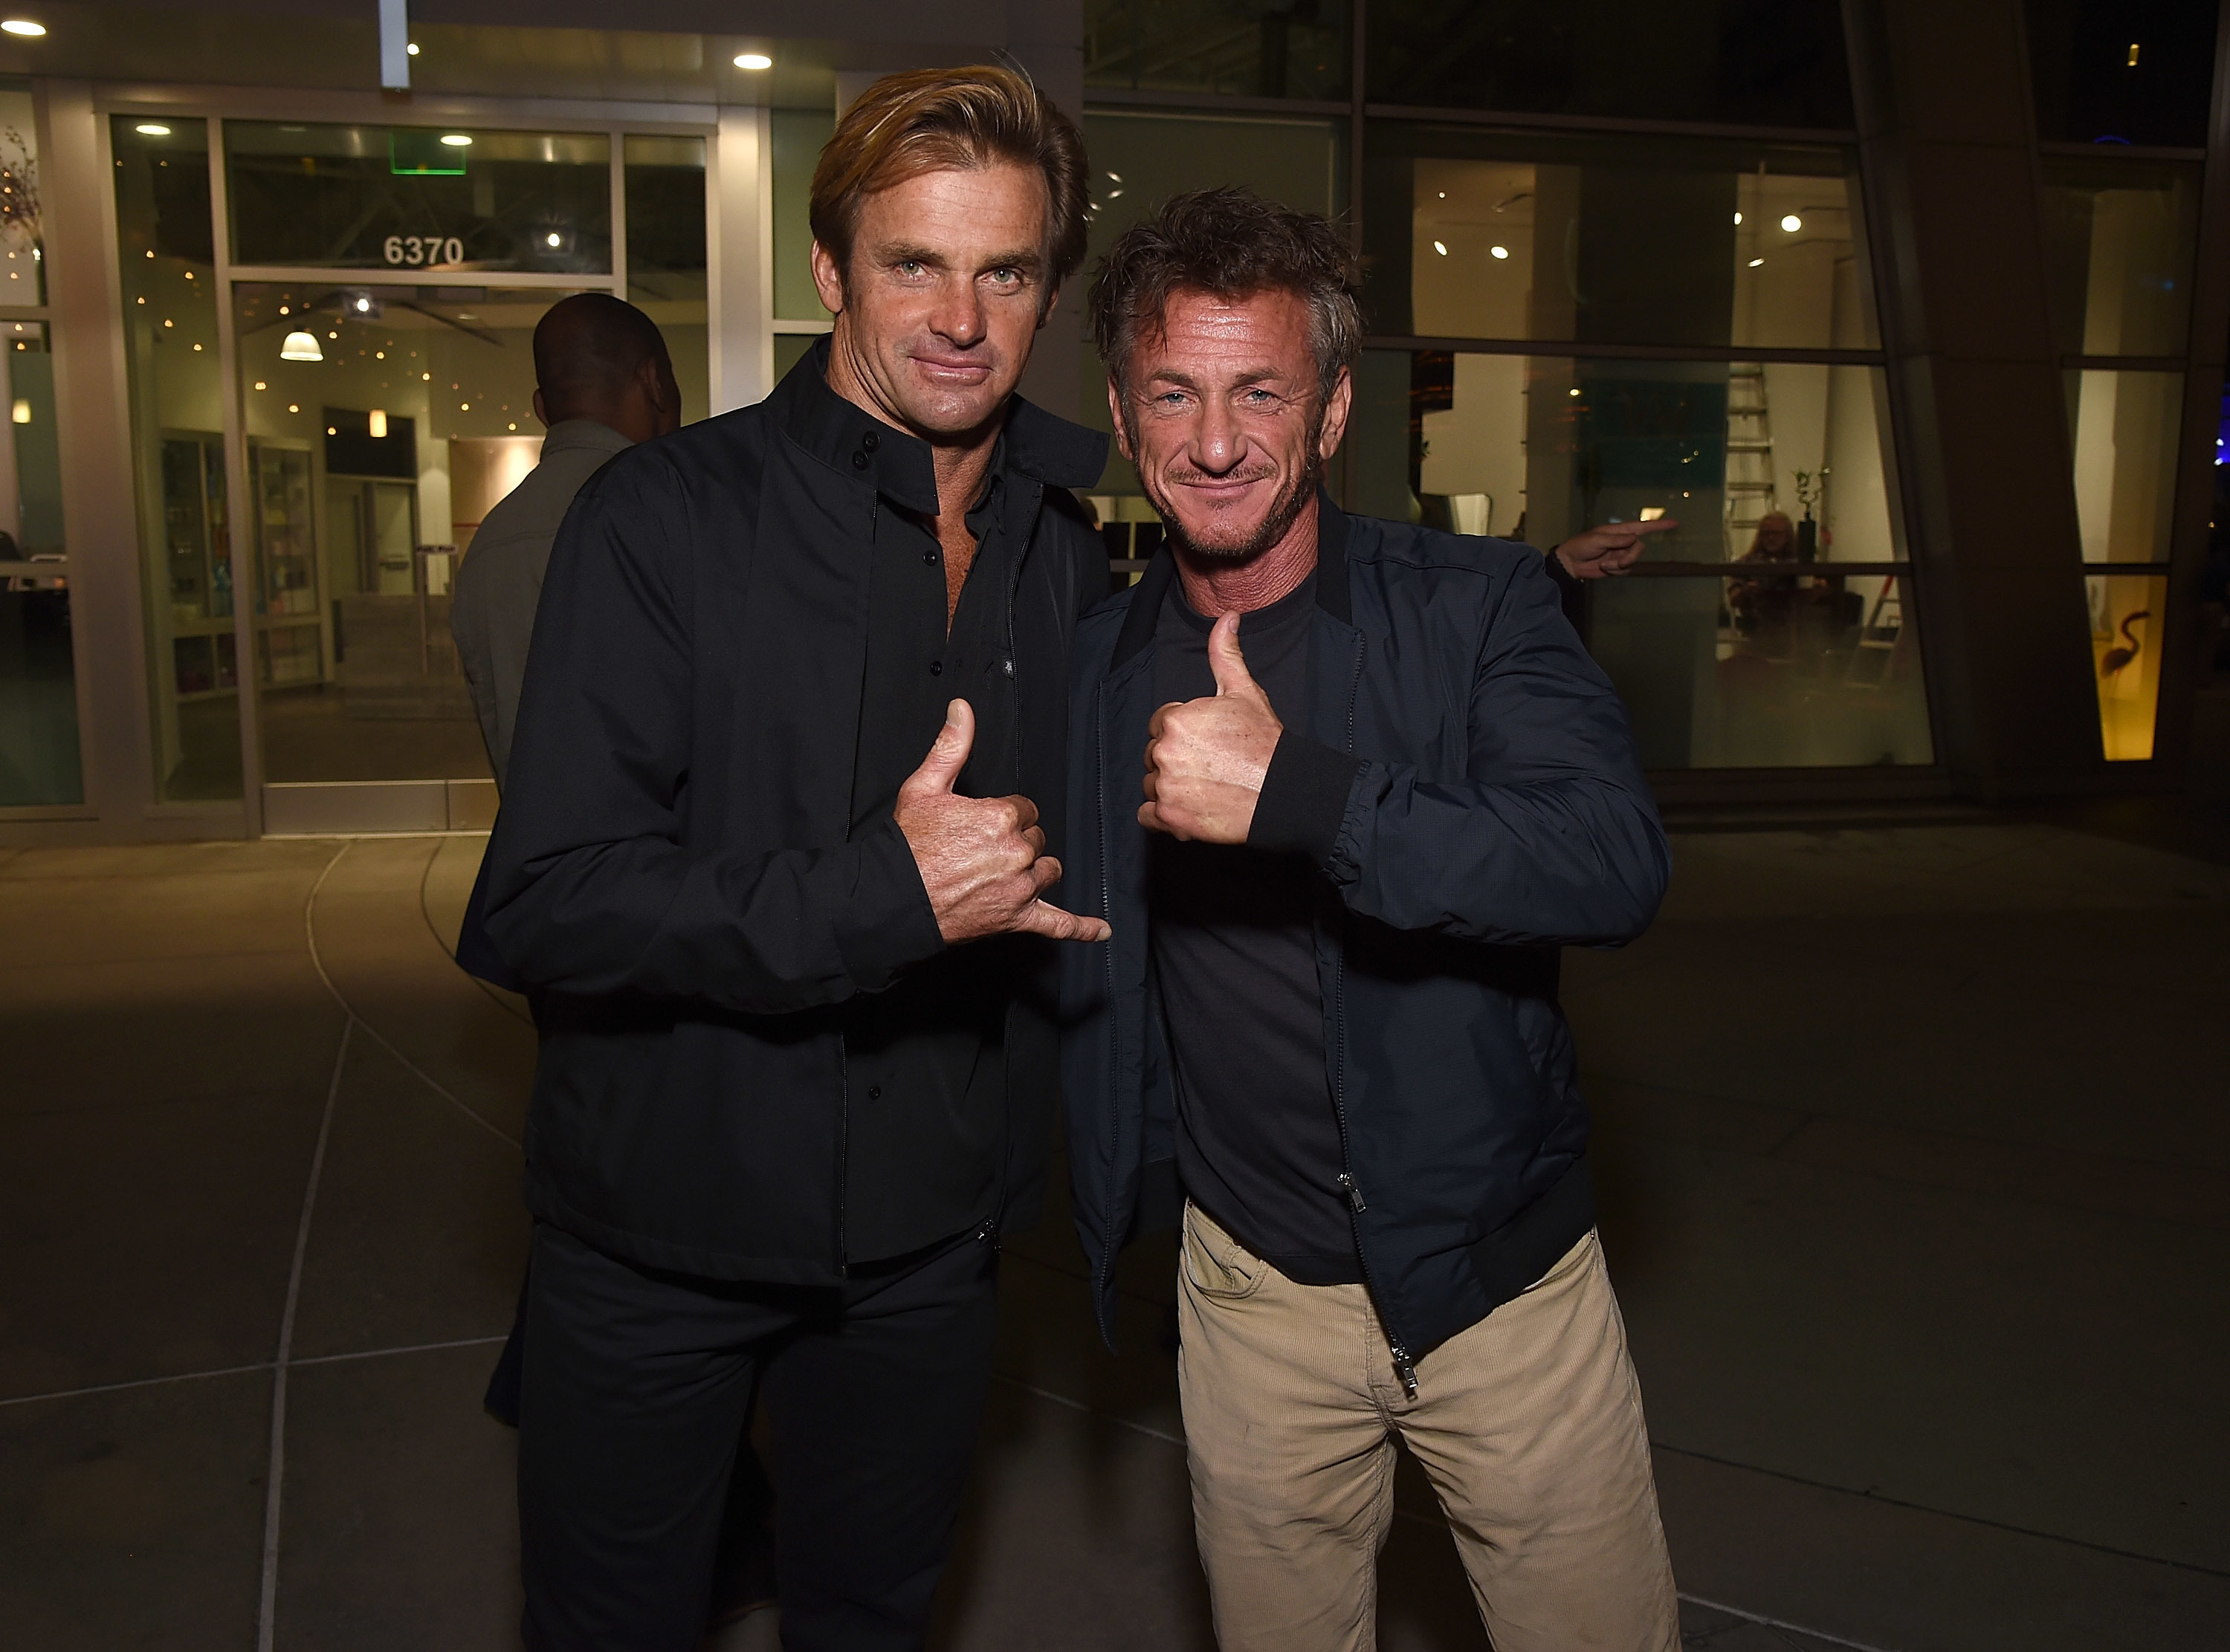 Laird Hamilton and Sean Penn attend the premiere of 'Take Every Wave' at ArcLight Cinemas in Los Angeles on Sept. 27, 2017.